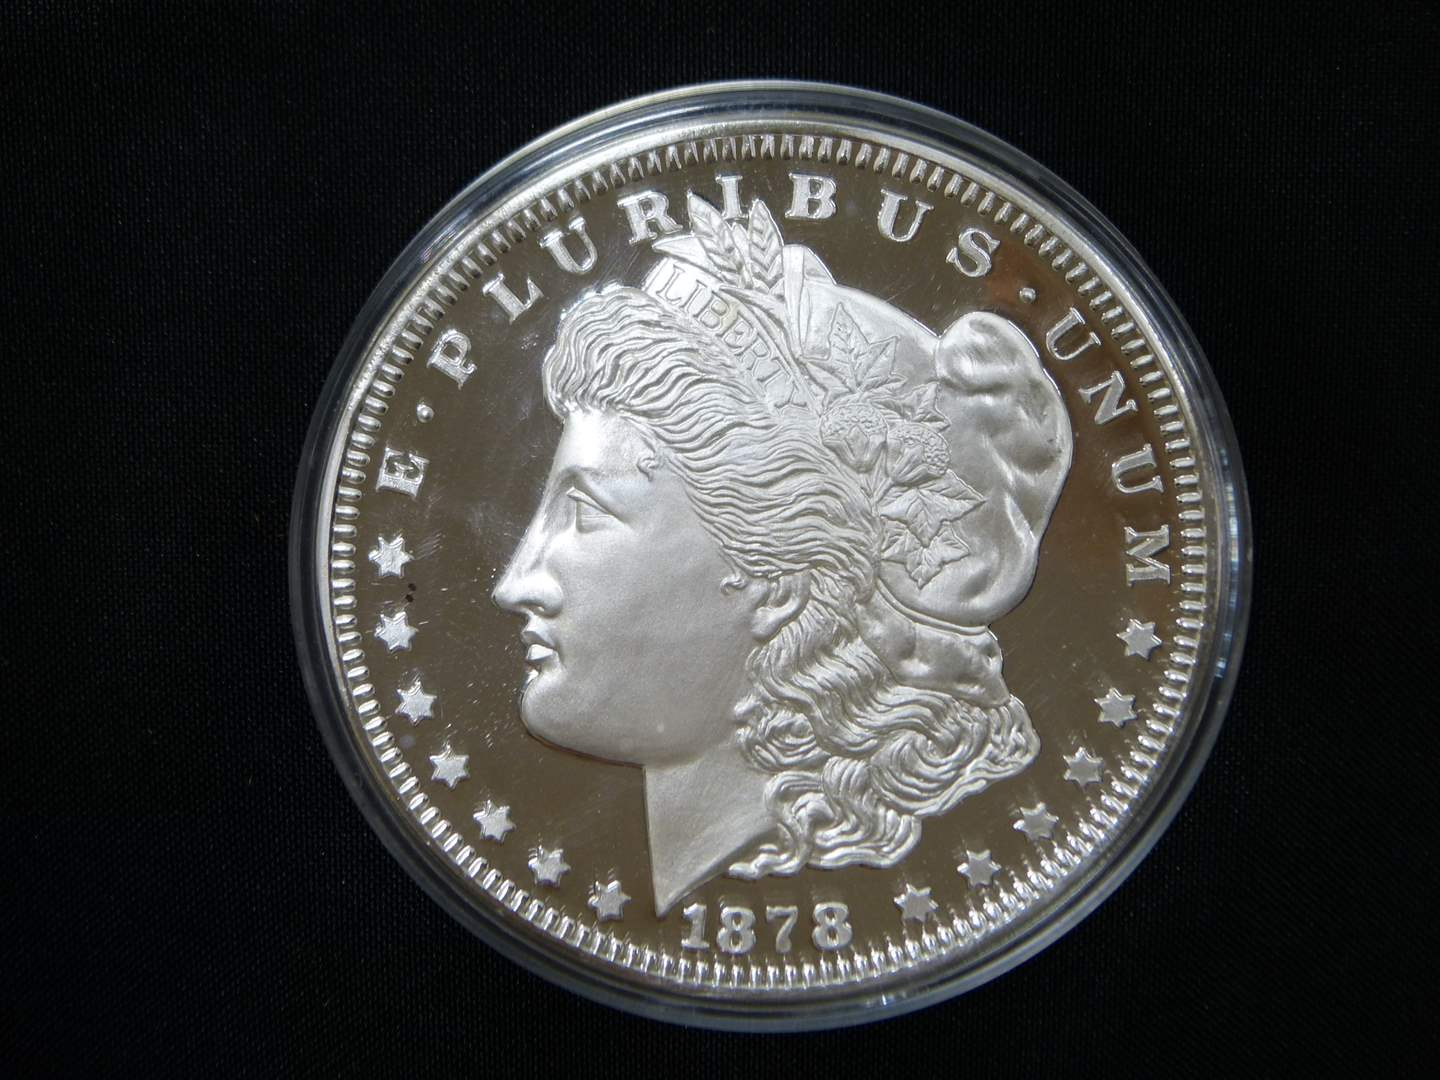 Lot # 2  WOW Limited Edition #00300 1/2 POUND PURE SILVER Morgan (YES HALF POUND)